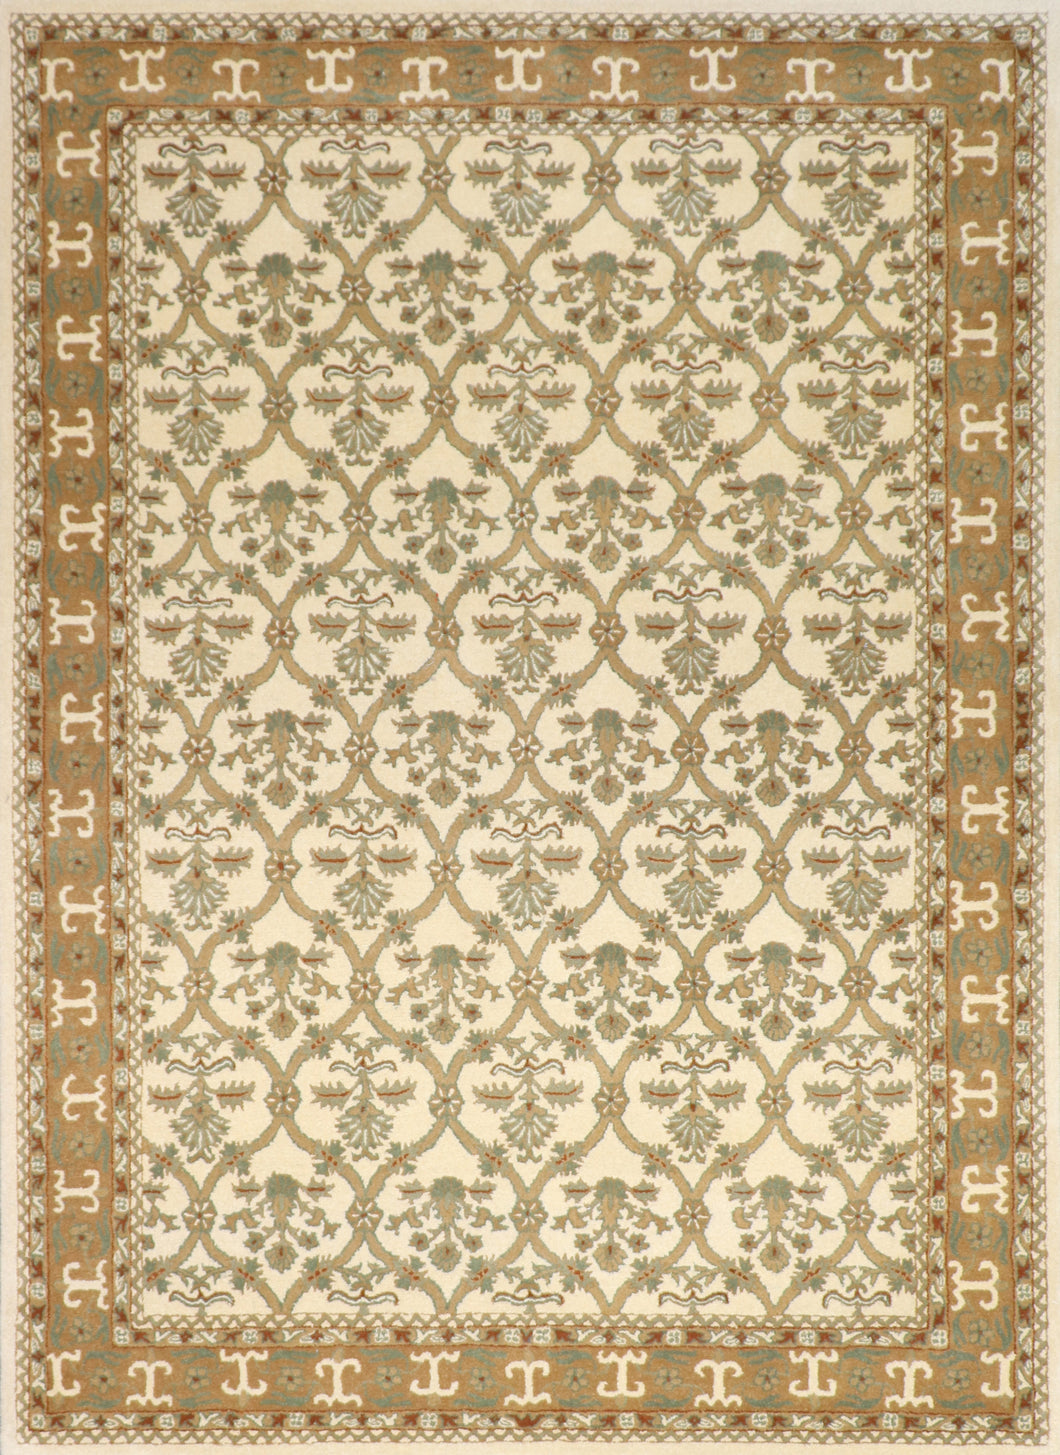 8'x11' Traditional Wool Hand-Tufted Rug